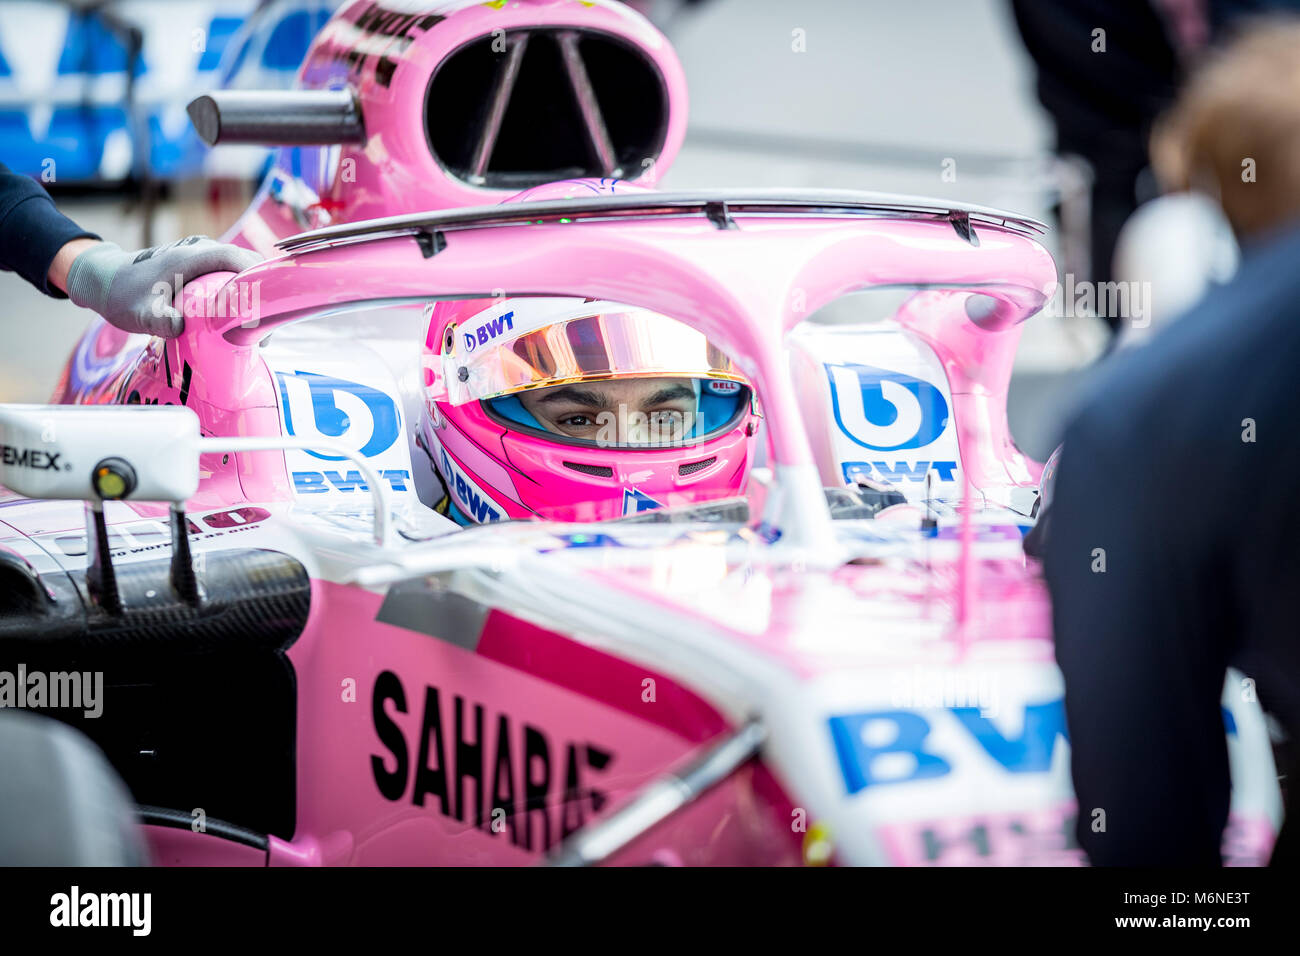 February 27, 2018 - Montmelo, Catalonia, Spain - Ocon, Force India F1 Team's driver seen during day 2 of the - Stock Image